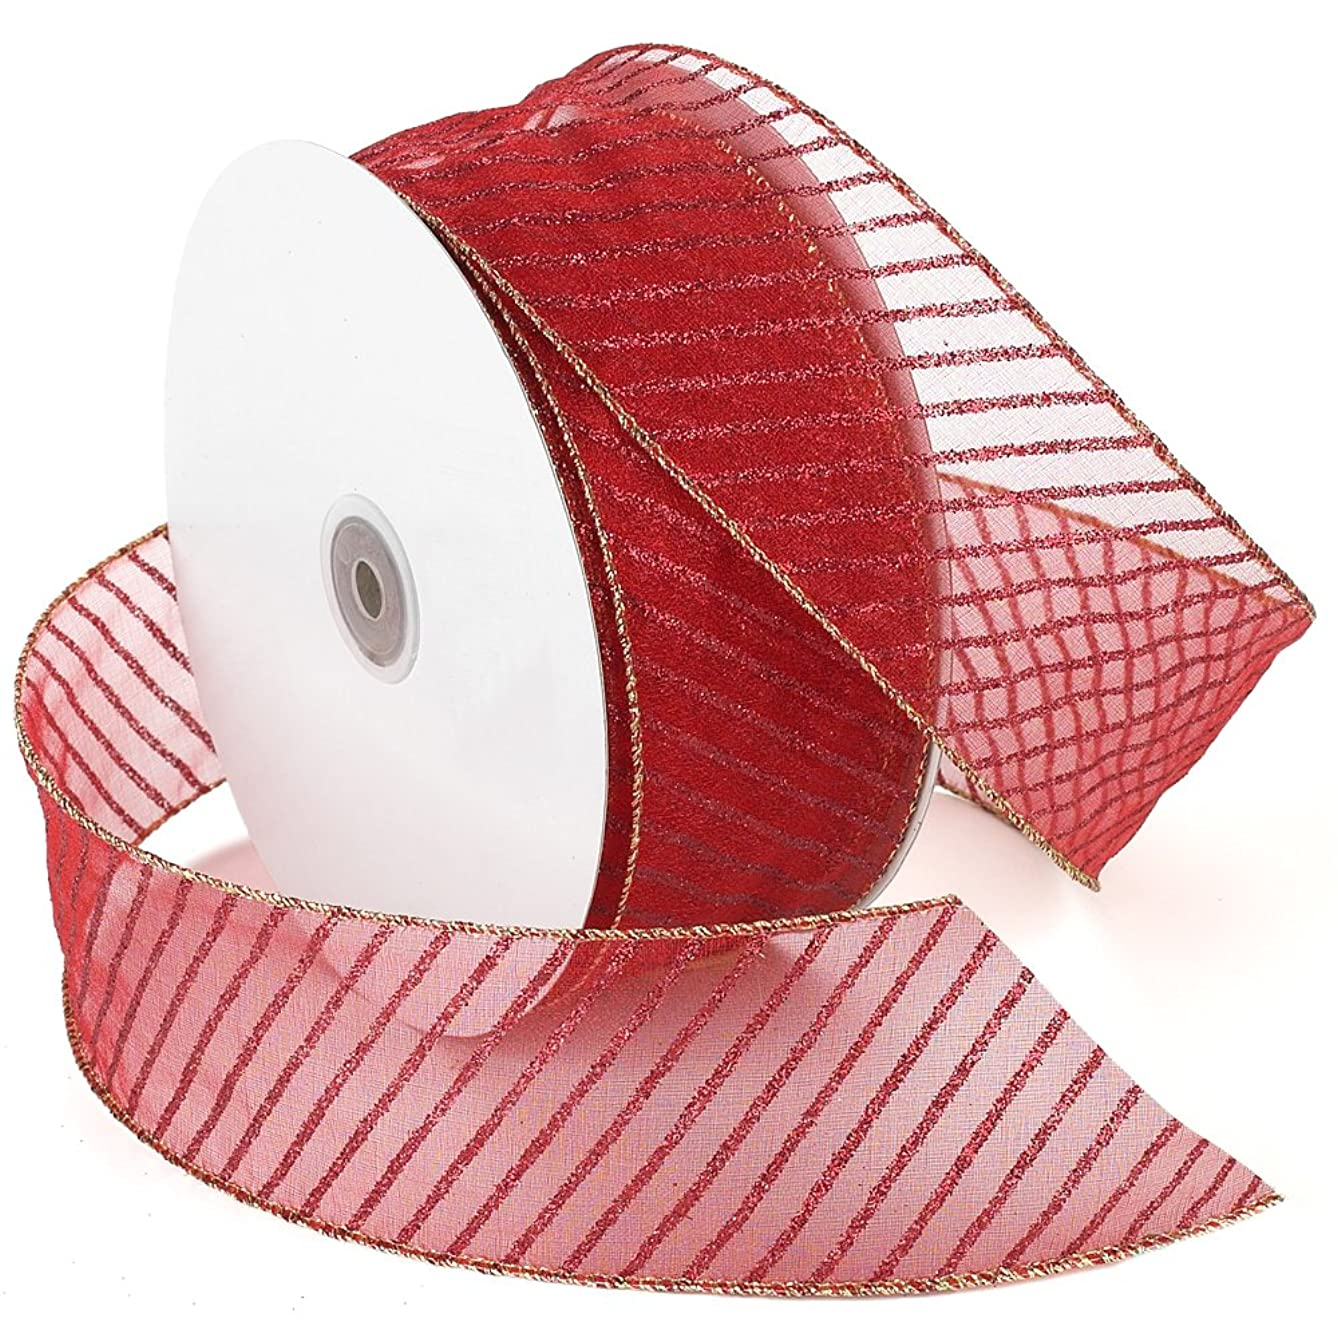 Morex Ribbon Striped Wired Sheer Glitter Organza Ribbon, 2-1/2-Inch by 50-Yard Spool, Multiple Colors